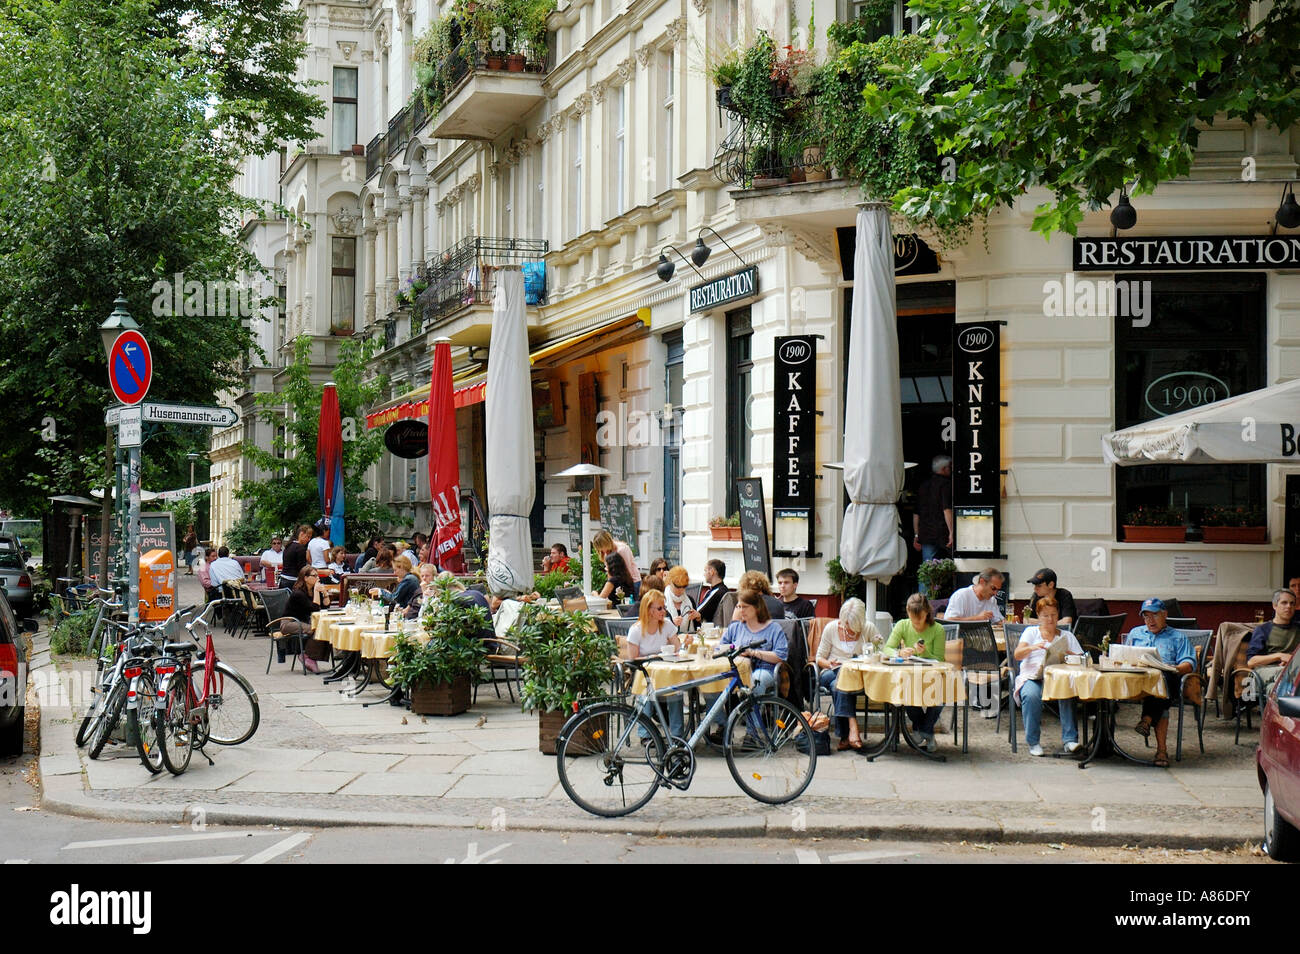 prenzlauer berg ist voll von restaurants berlin deutschland stockfoto bild 12002894 alamy. Black Bedroom Furniture Sets. Home Design Ideas